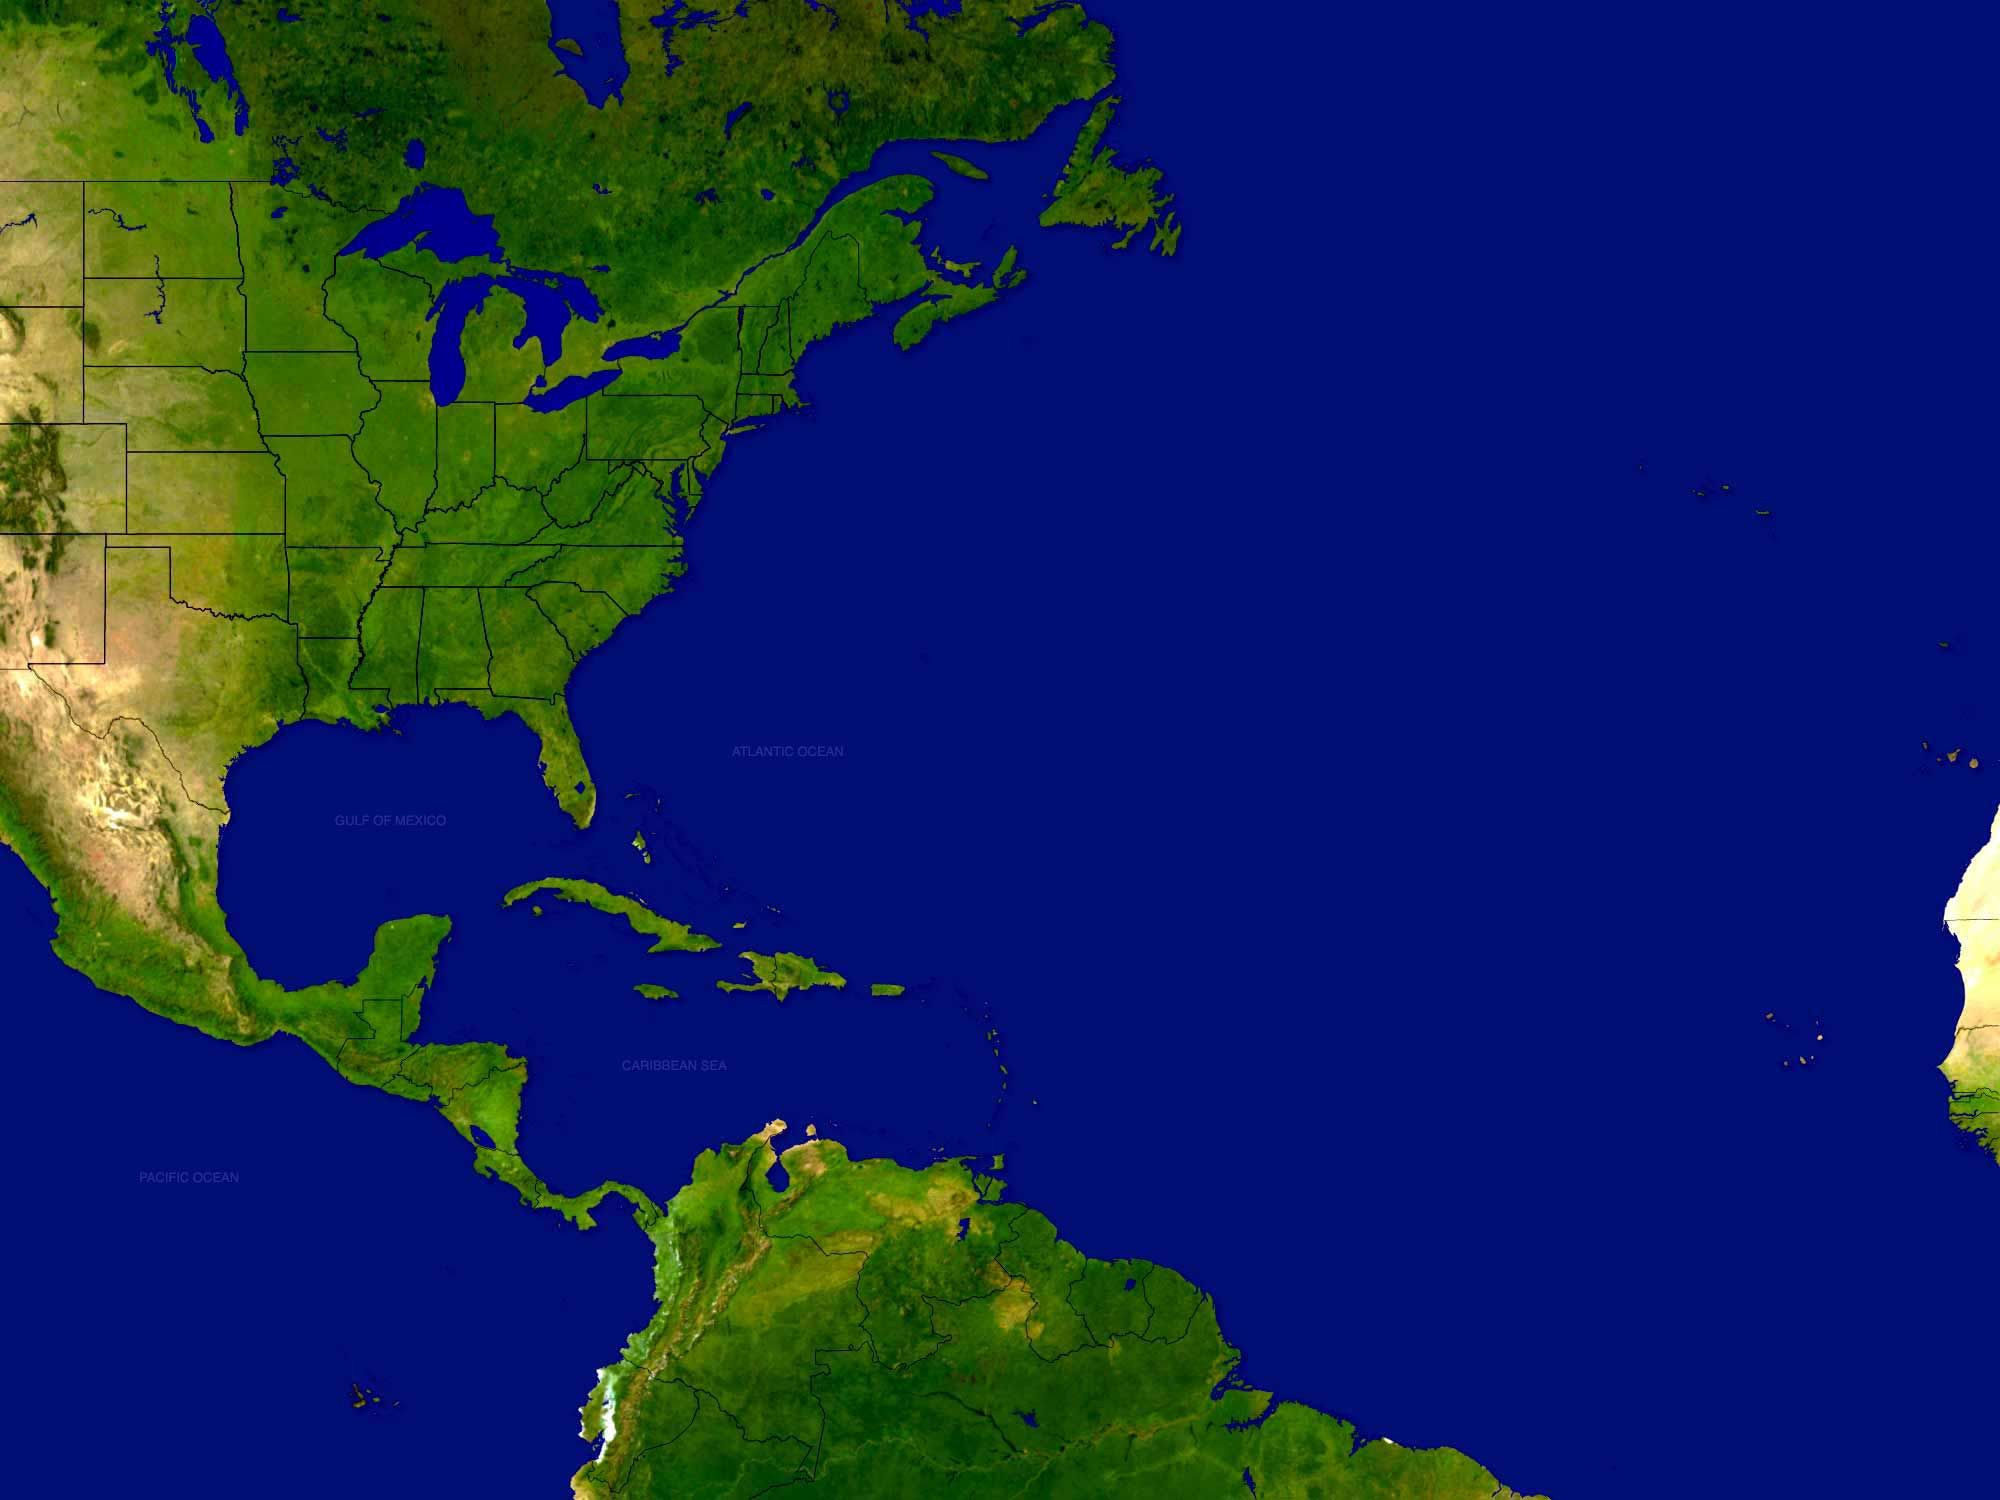 Hurricane Tracker Http Www Weather Com Newscenter Hurricanecentral 2011 Irene Html Alien Worlds Landscape Things To Know